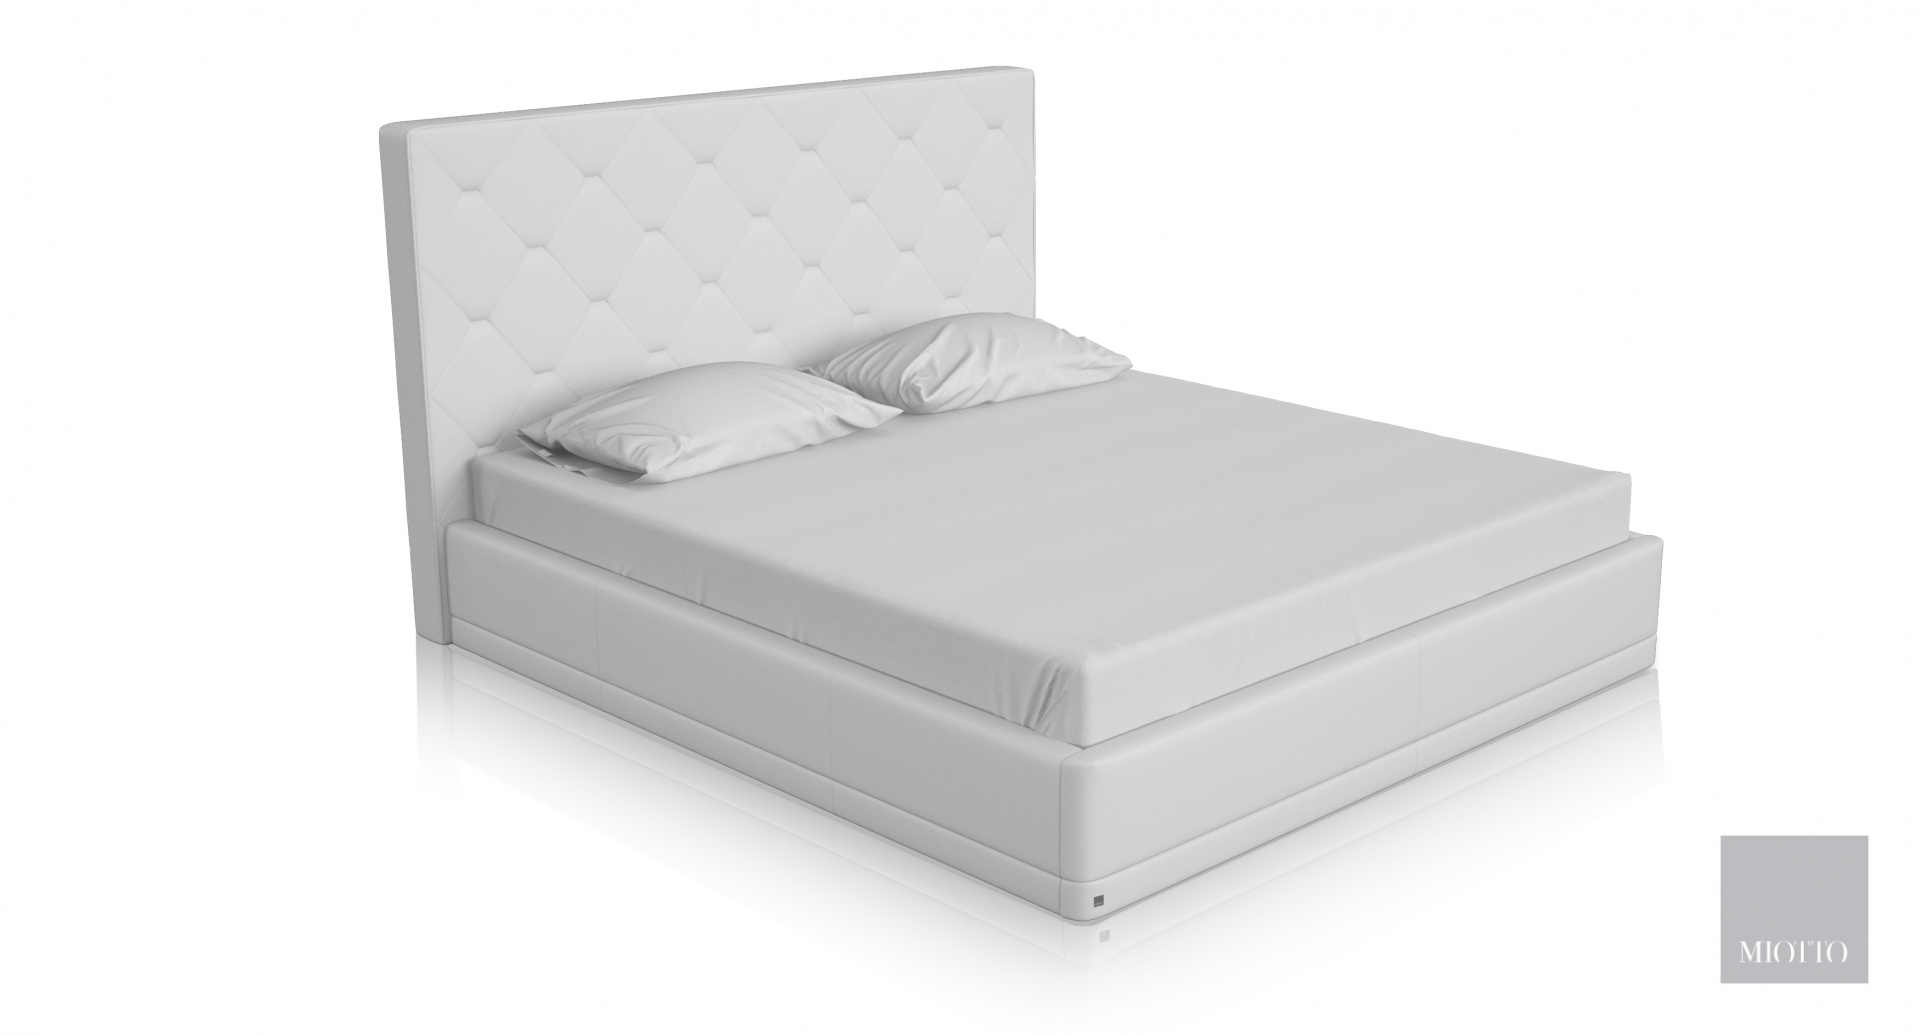 miotto_piana white leather bed T miottto design furniture